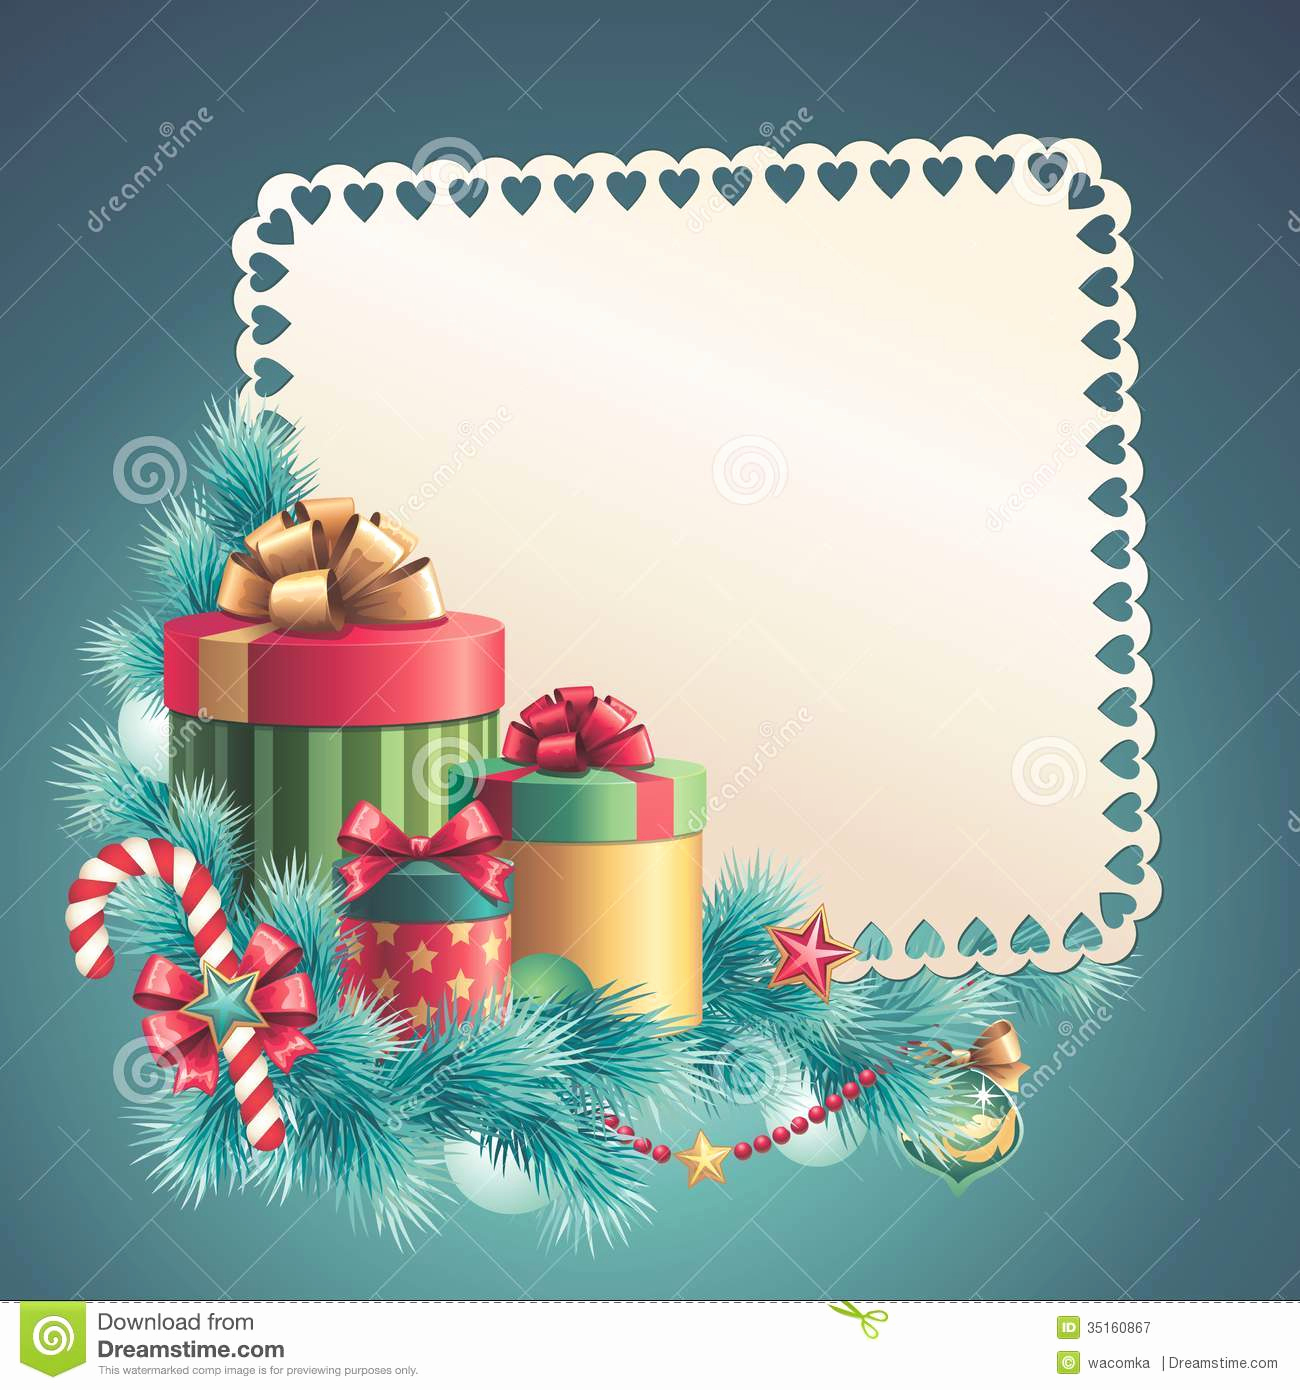 Free Greeting Card Templates Inspirational Christmas Gift Boxes Stack Greeting Card Stock